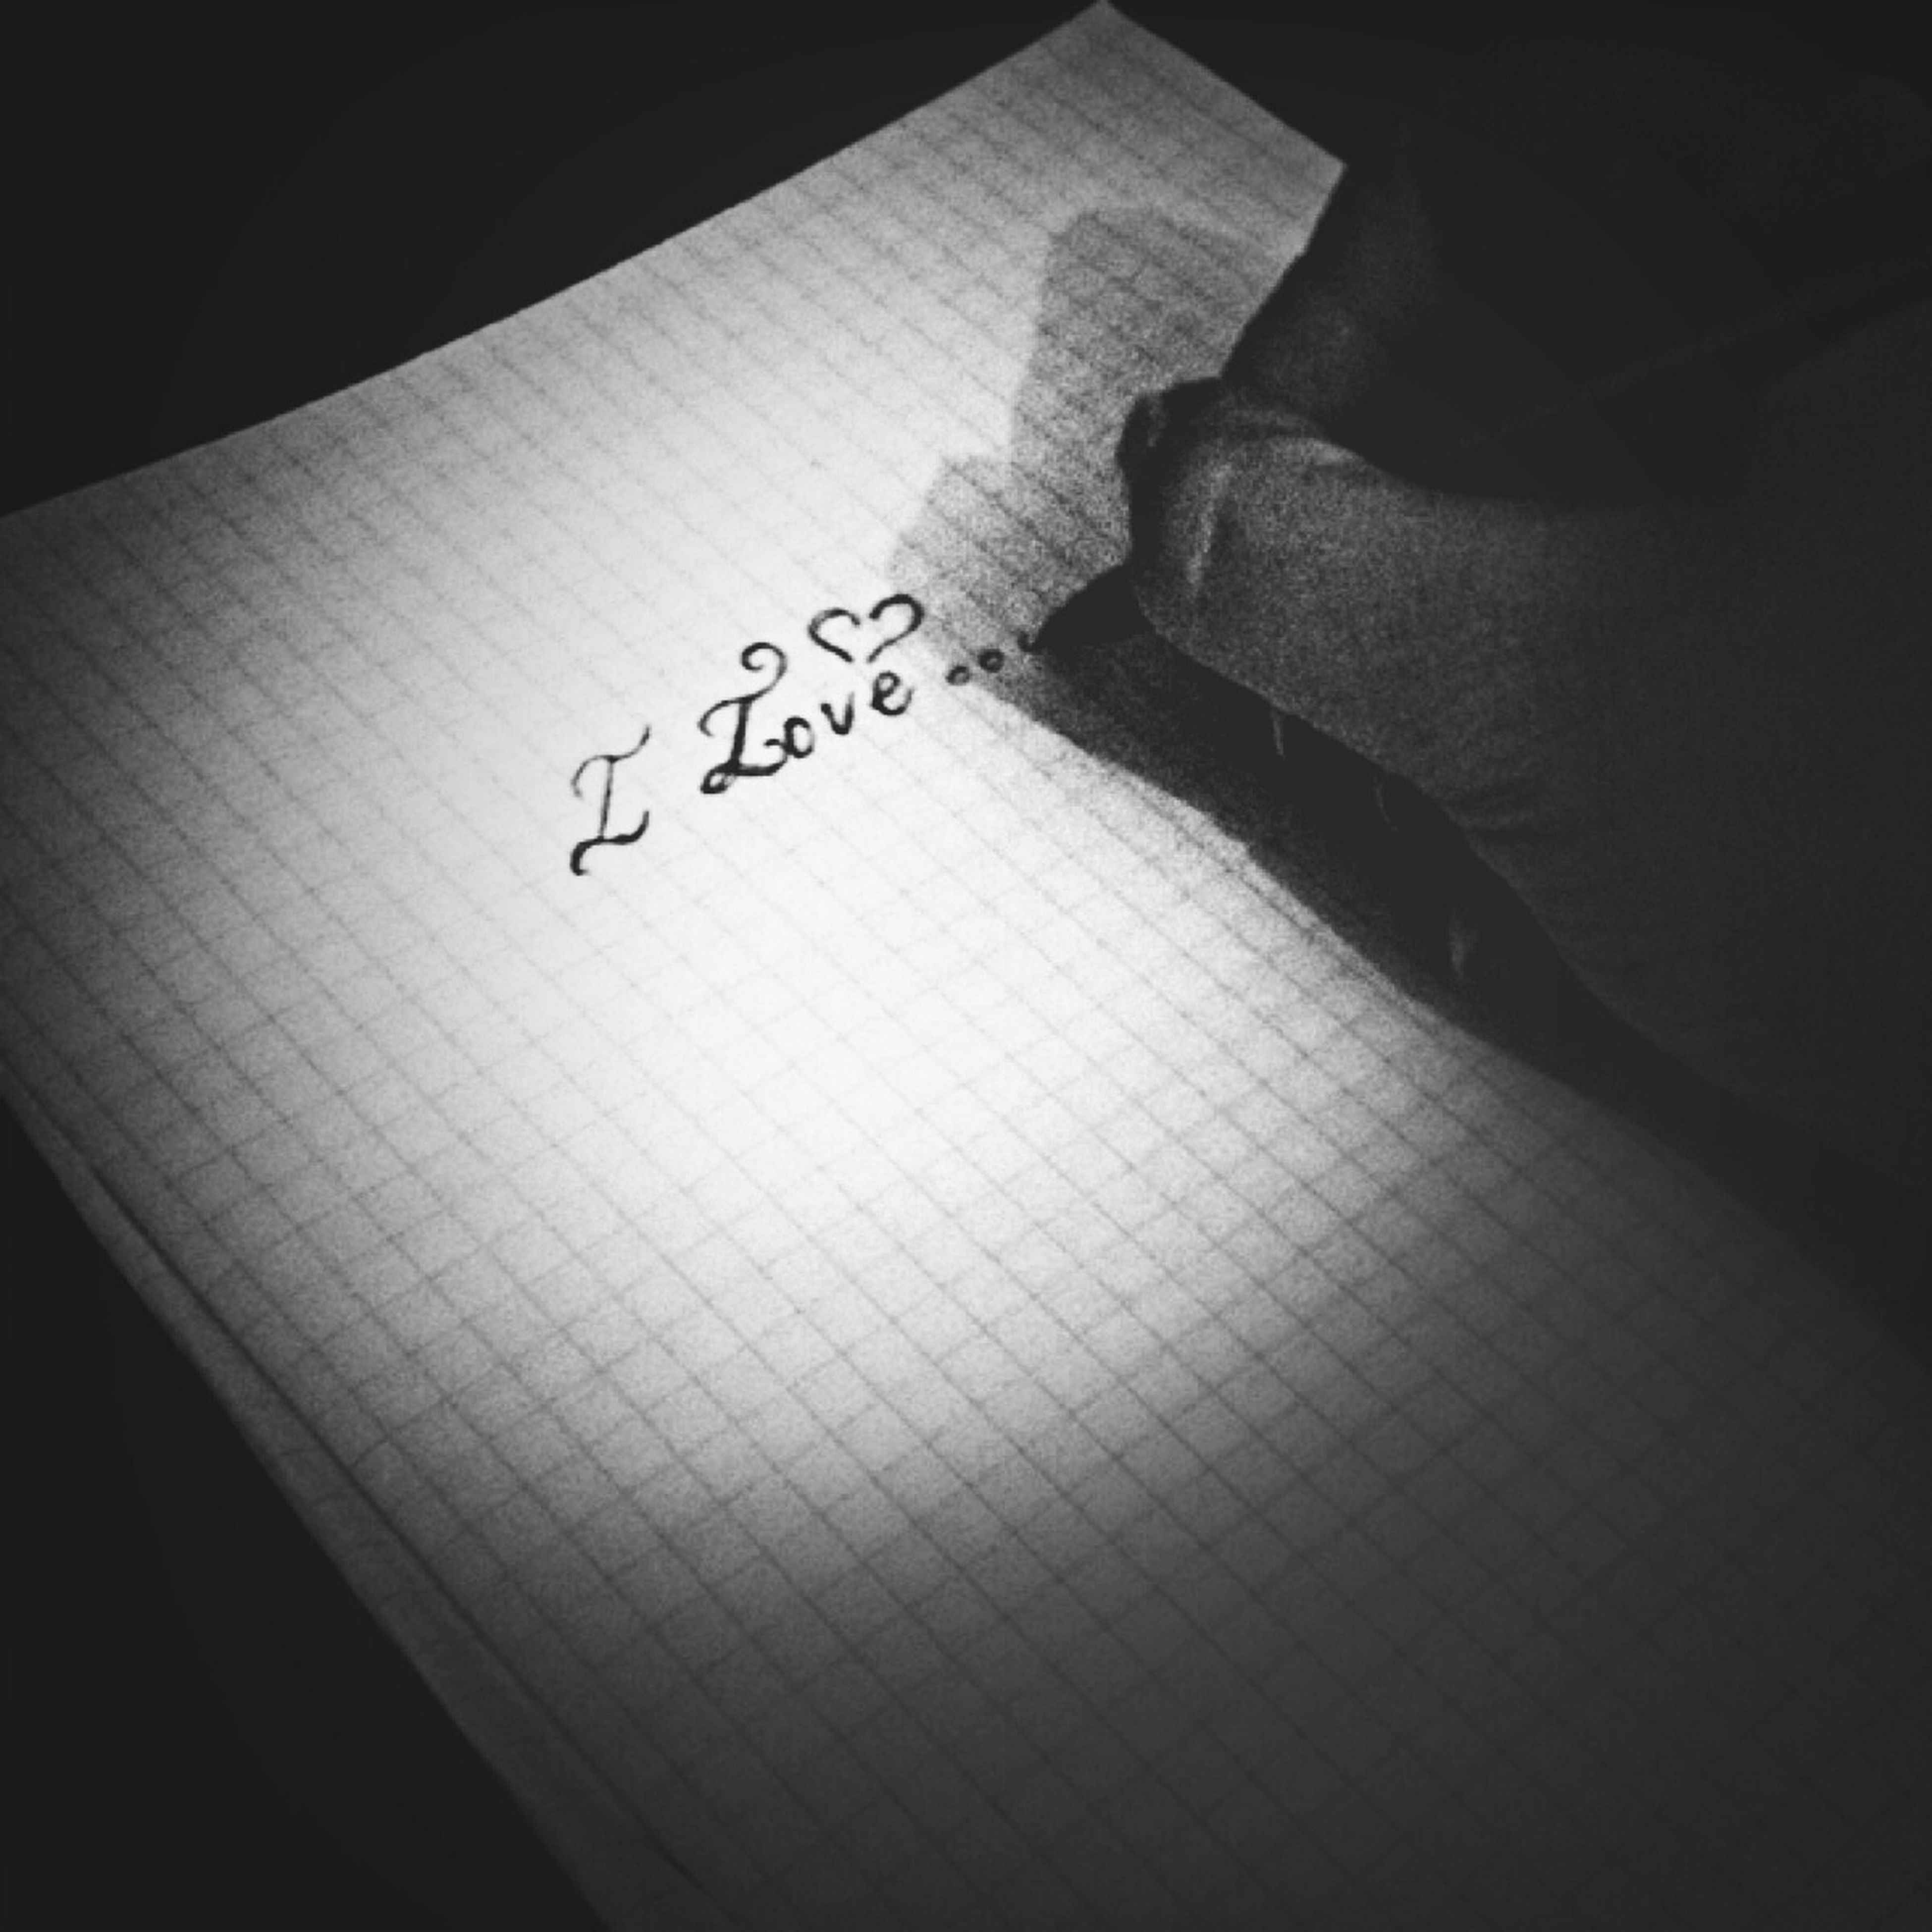 indoors, text, high angle view, western script, communication, paper, creativity, art, art and craft, flooring, wall - building feature, close-up, no people, vignette, shadow, non-western script, auto post production filter, still life, sunlight, pattern